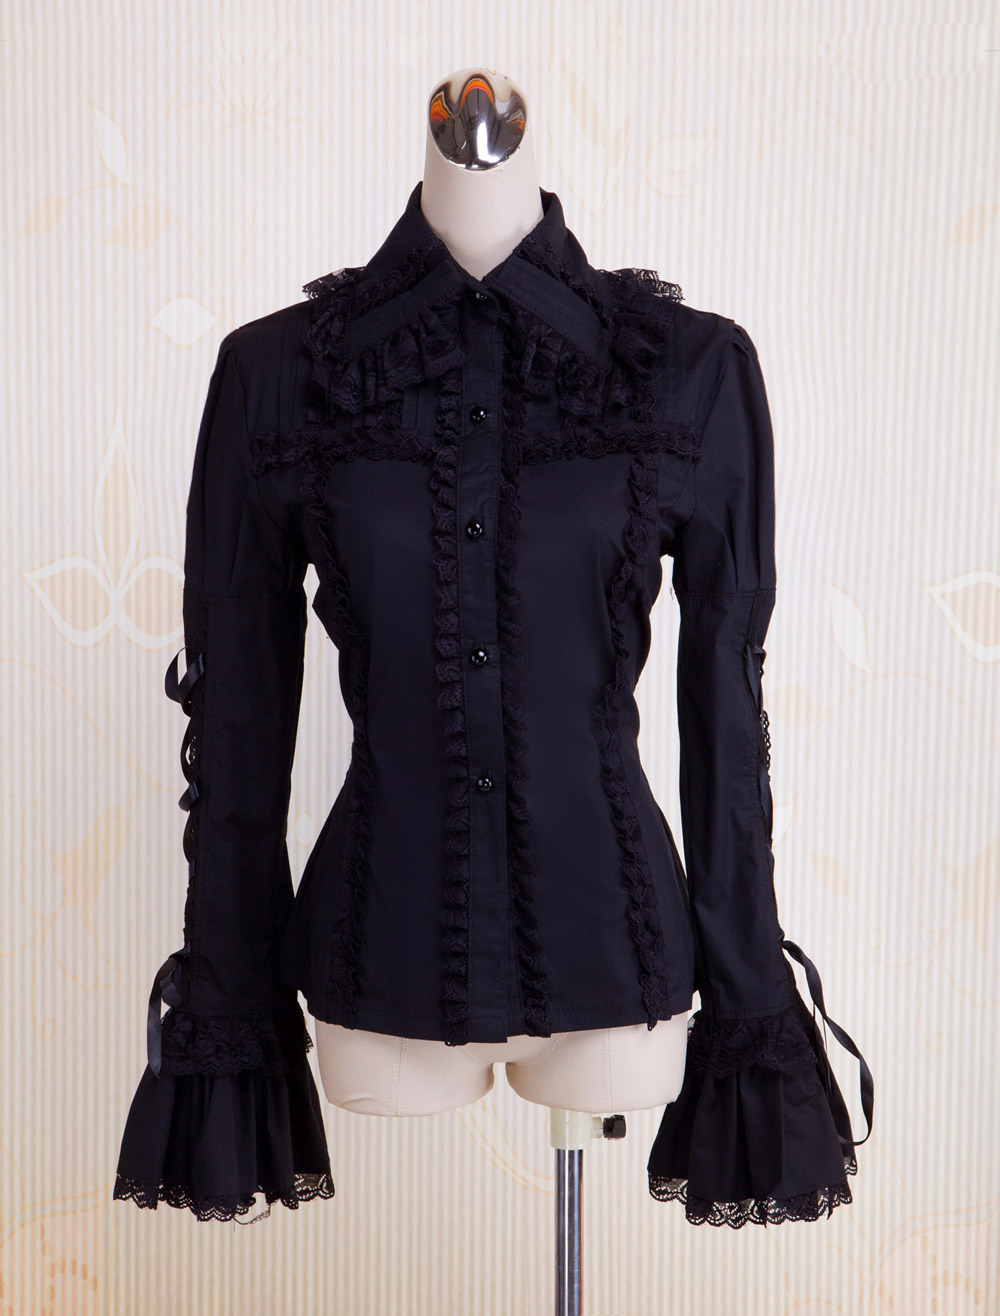 Buy Black Cotton Lolita Blouse Long Hime Sleeves Lace Up Lace Trim Turn-down Collar for $43.99 in Milanoo store